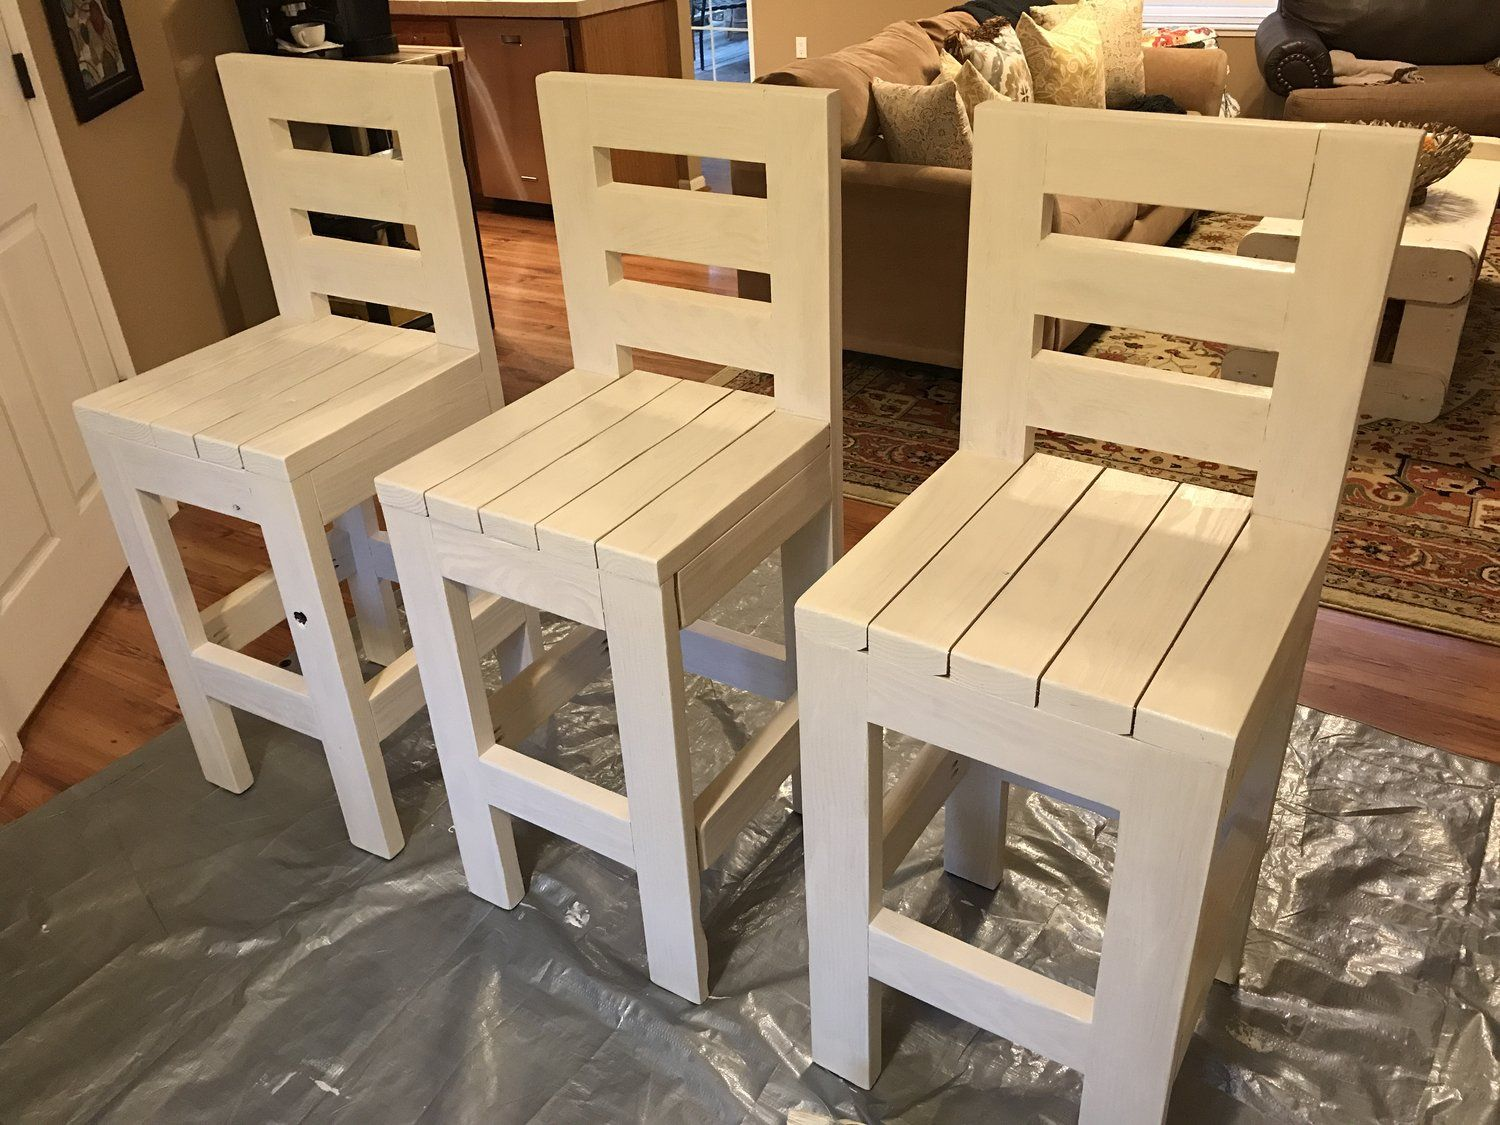 Farmhouse Bar Stools We Build These Are Very Sturdy And Add That